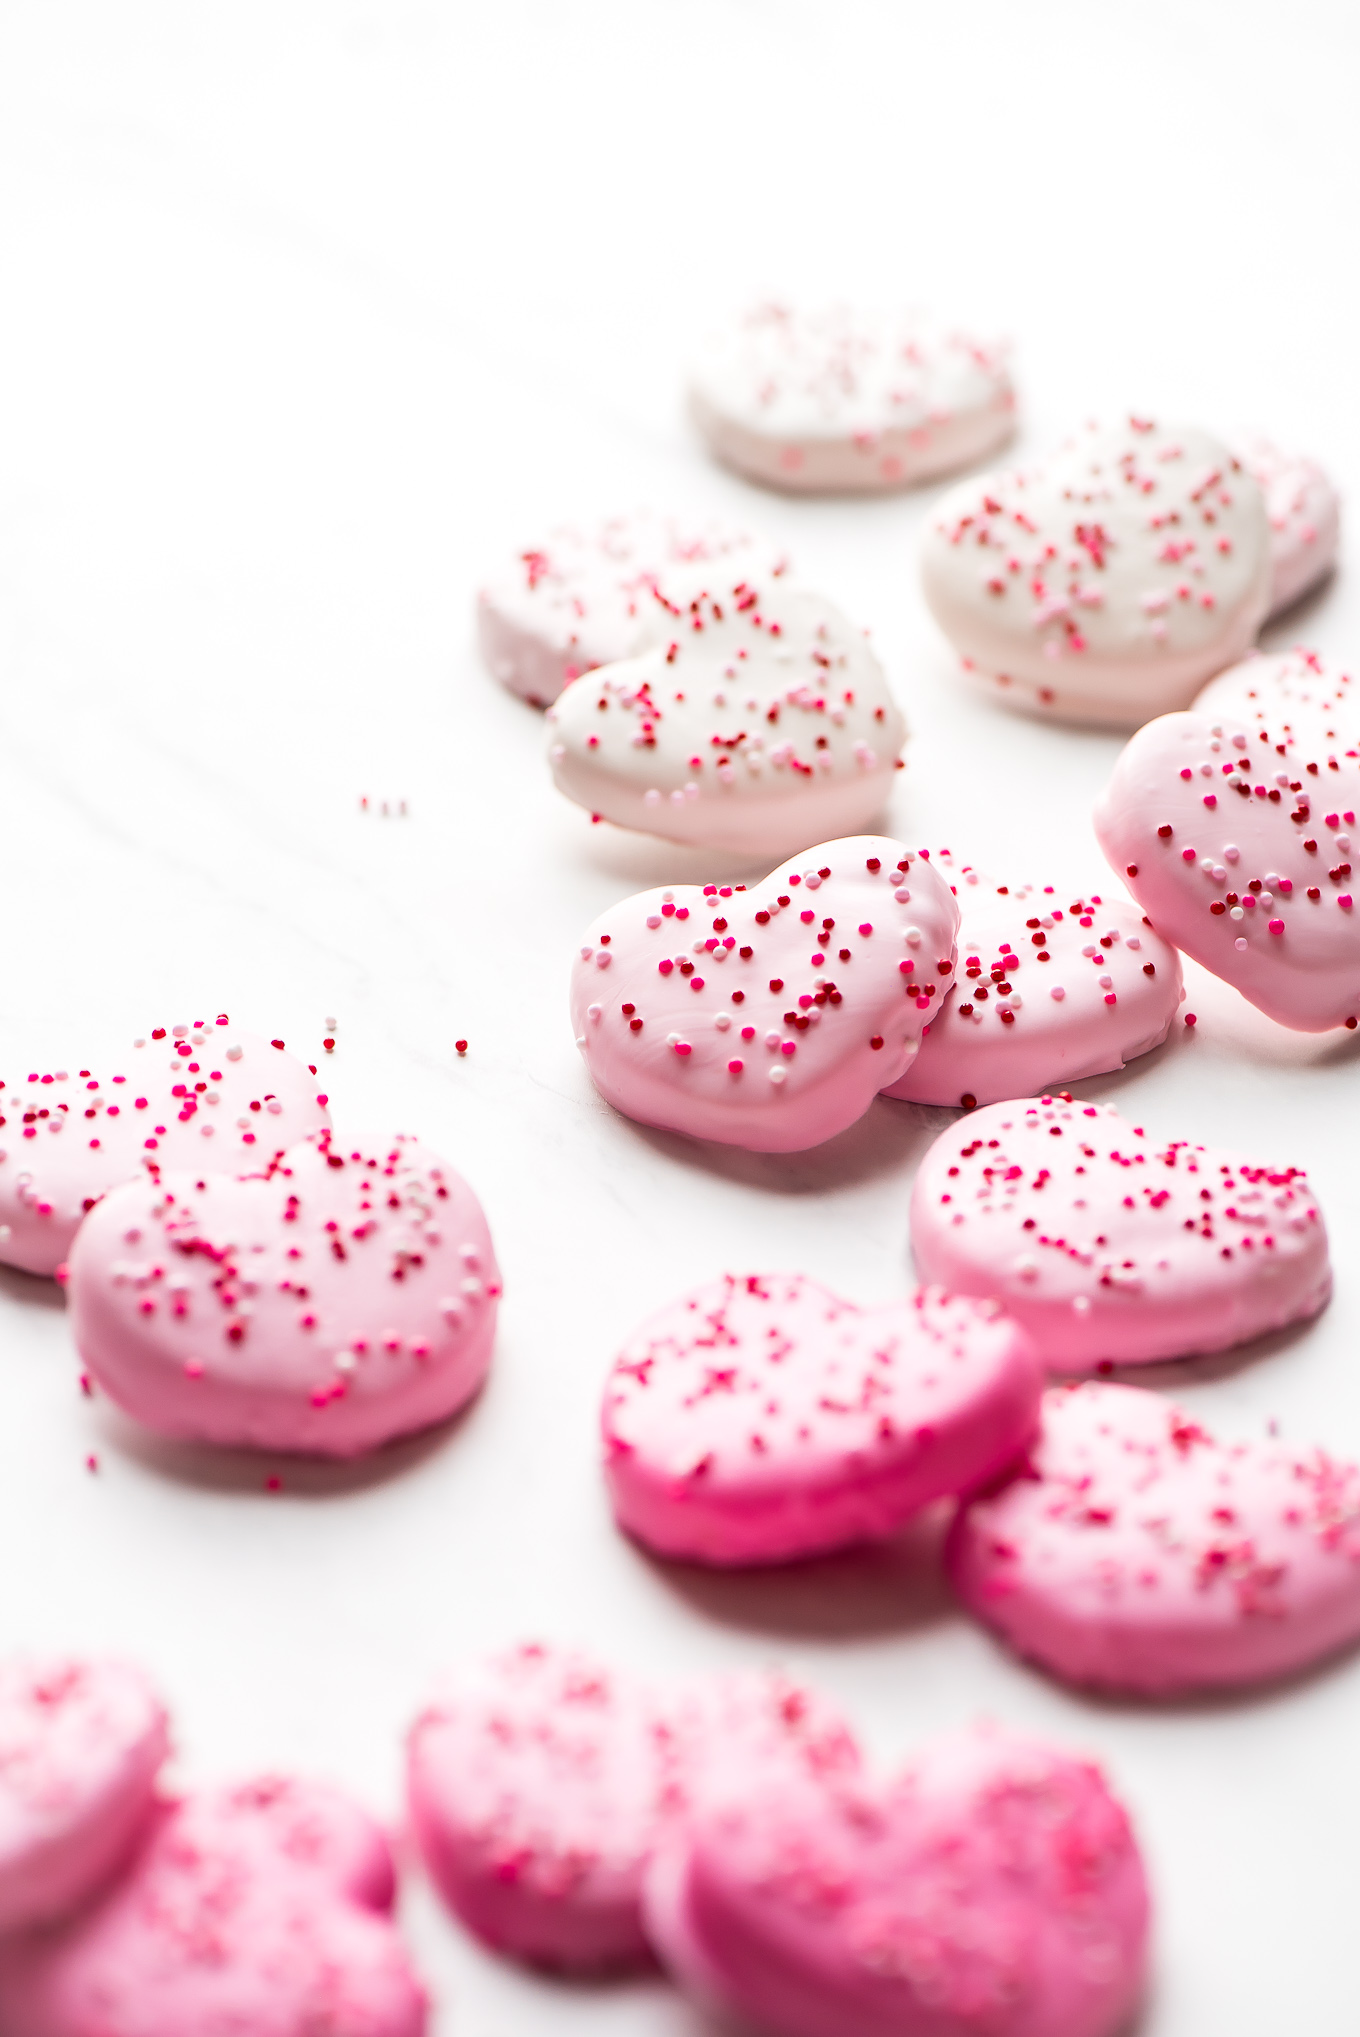 Pink and white Heart Circus Cookies covered in sprinkles spread out on marble surface.